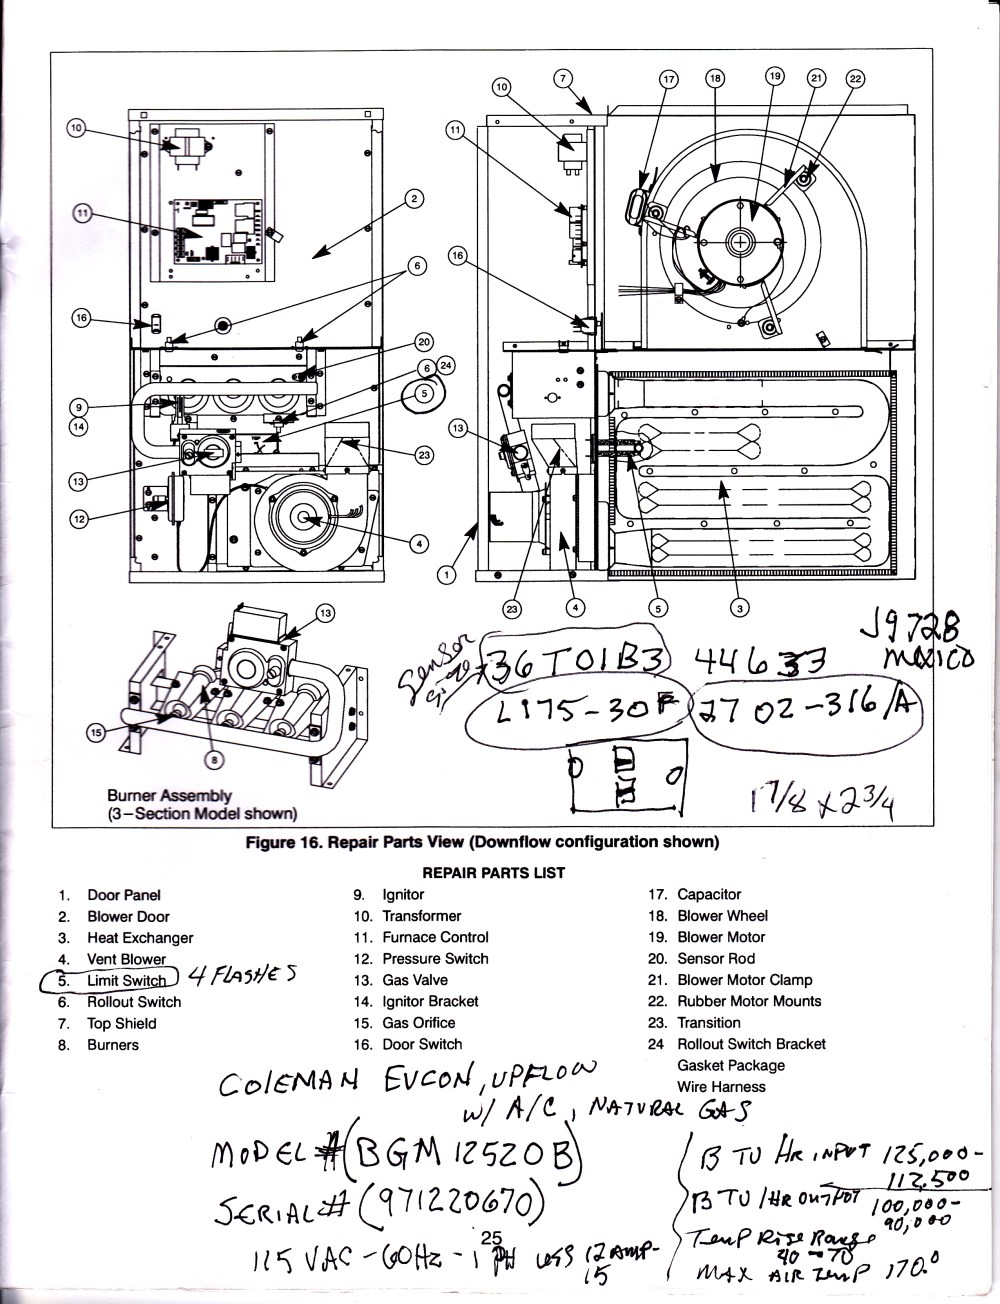 medium resolution of coleman 7975 furnace wiring diagram coleman free engine coleman eb15b electric furnace diagram coleman electric furnace